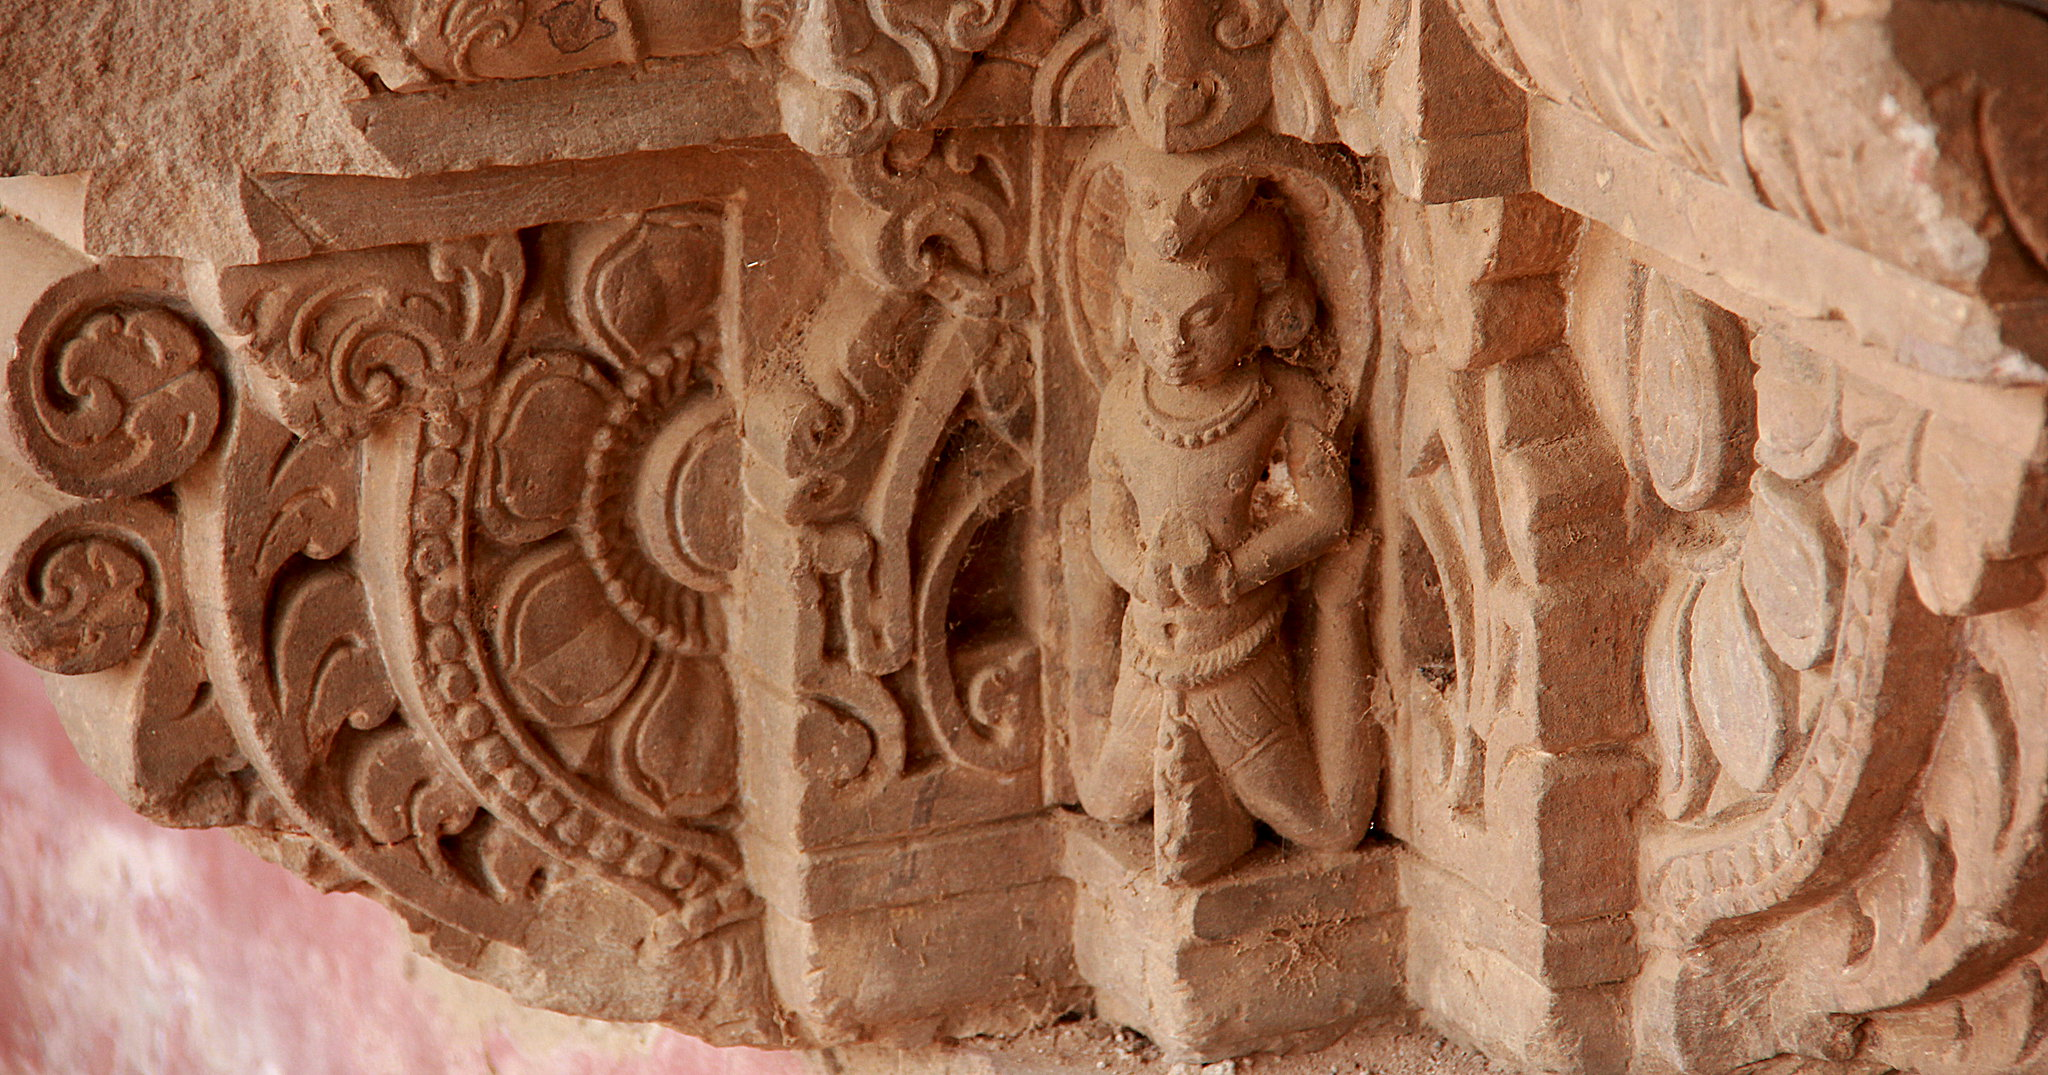 Rich carvings of the Harshat Mata temple next to Abhaneri Stepwell